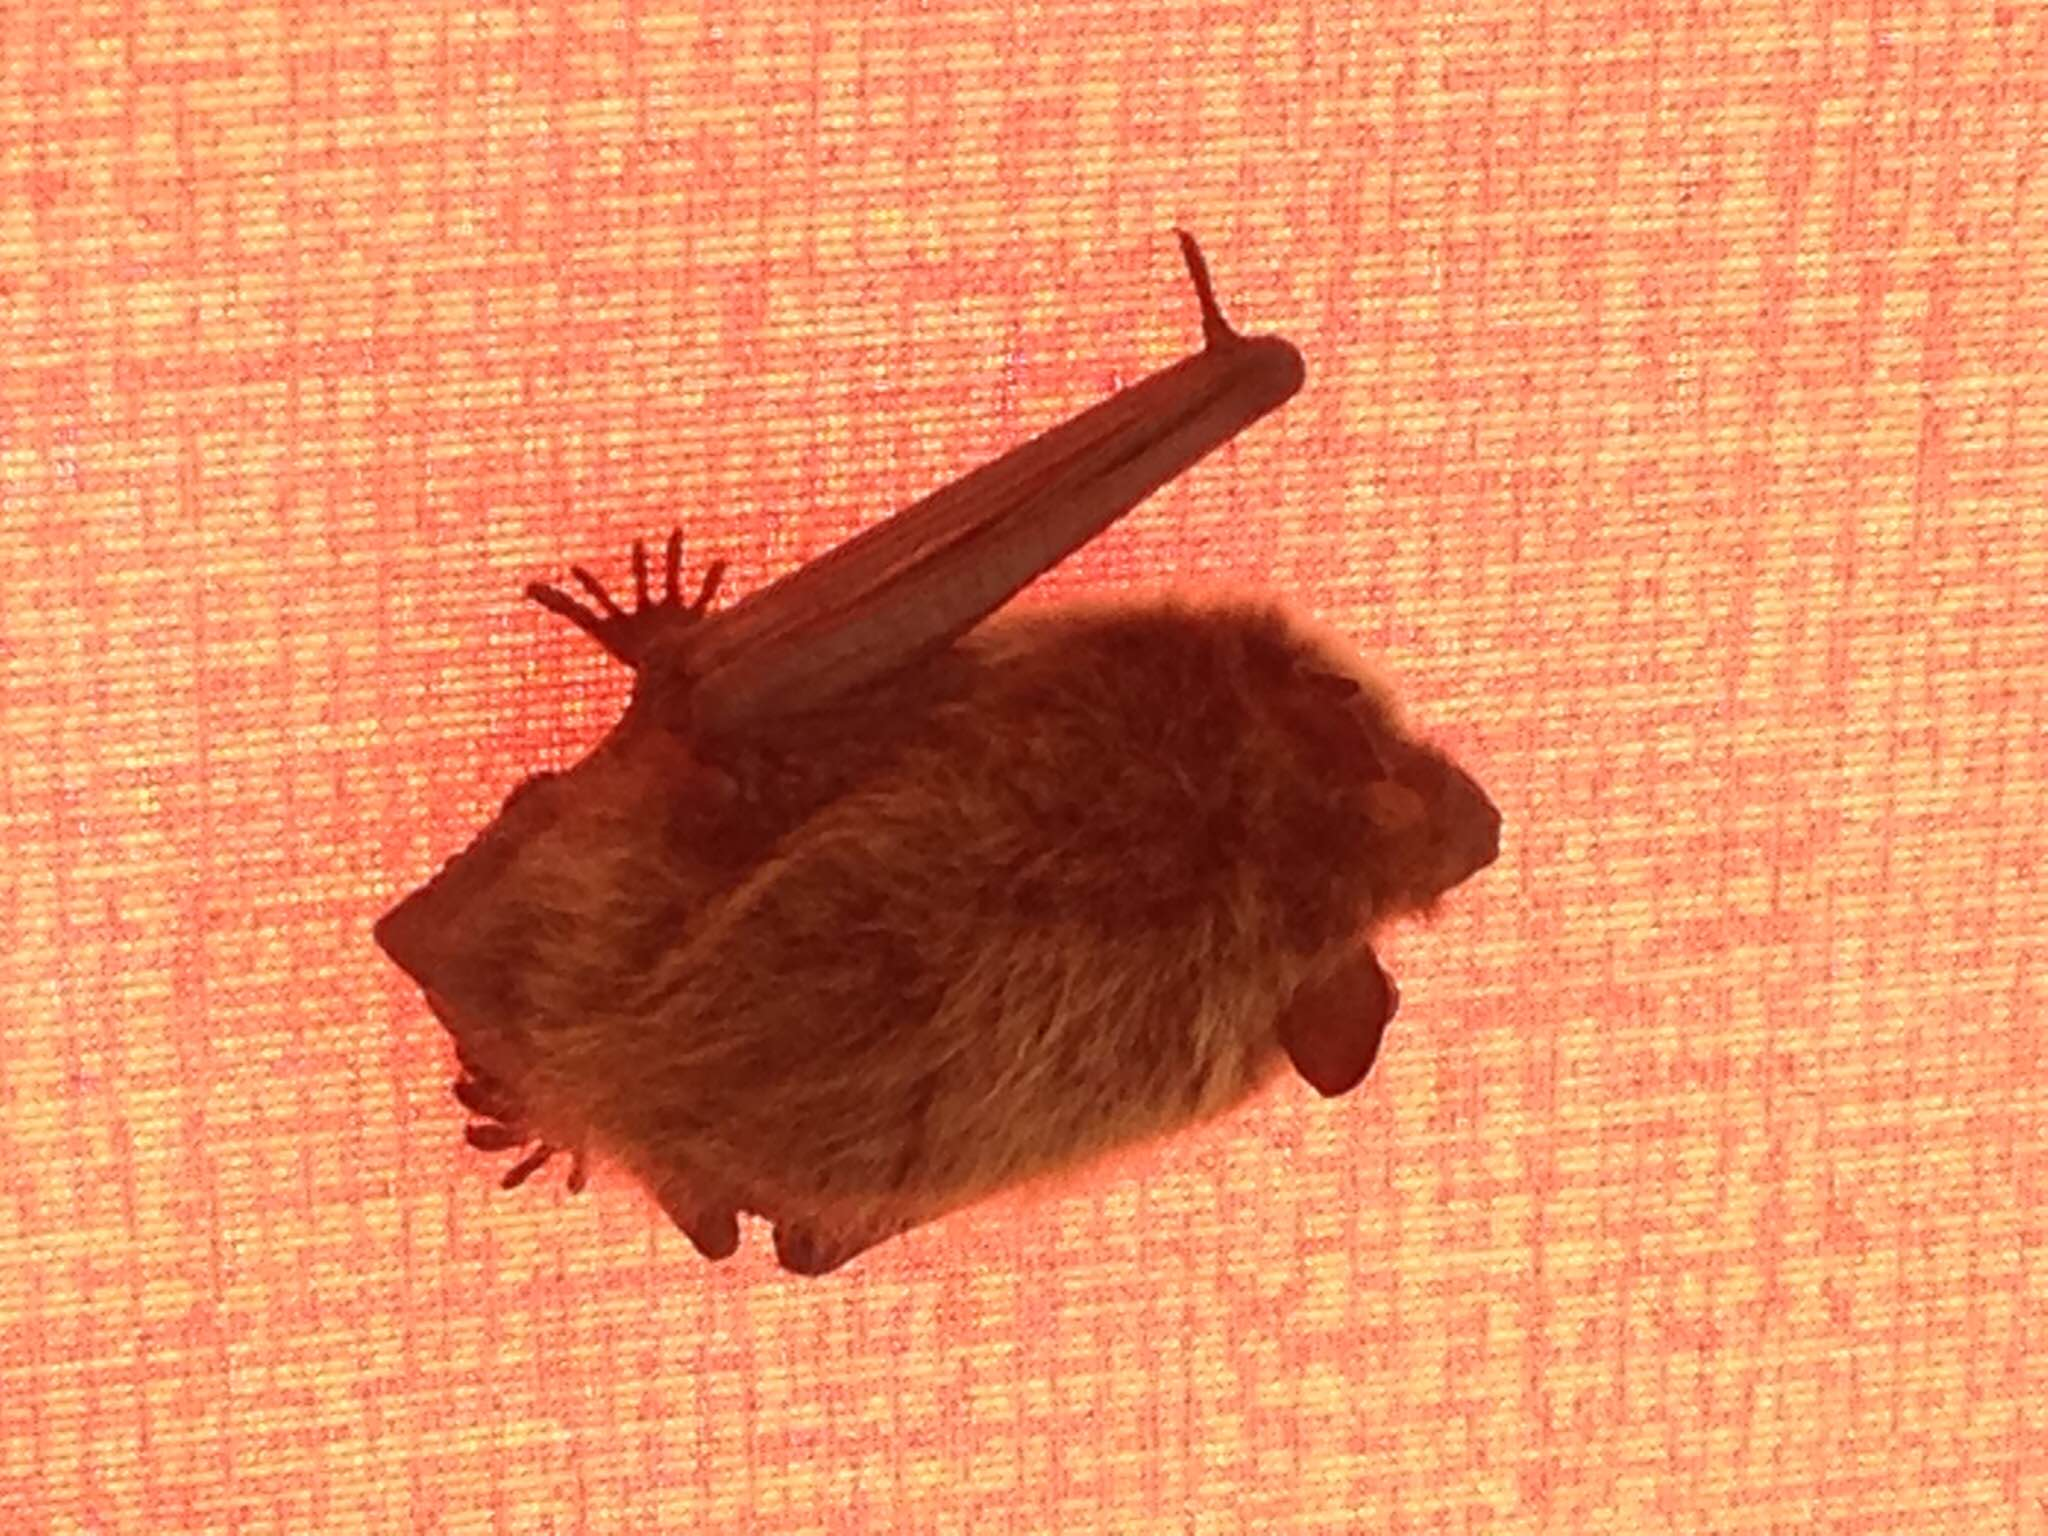 Bat Removal Service Bat Removal Iowa Affordable